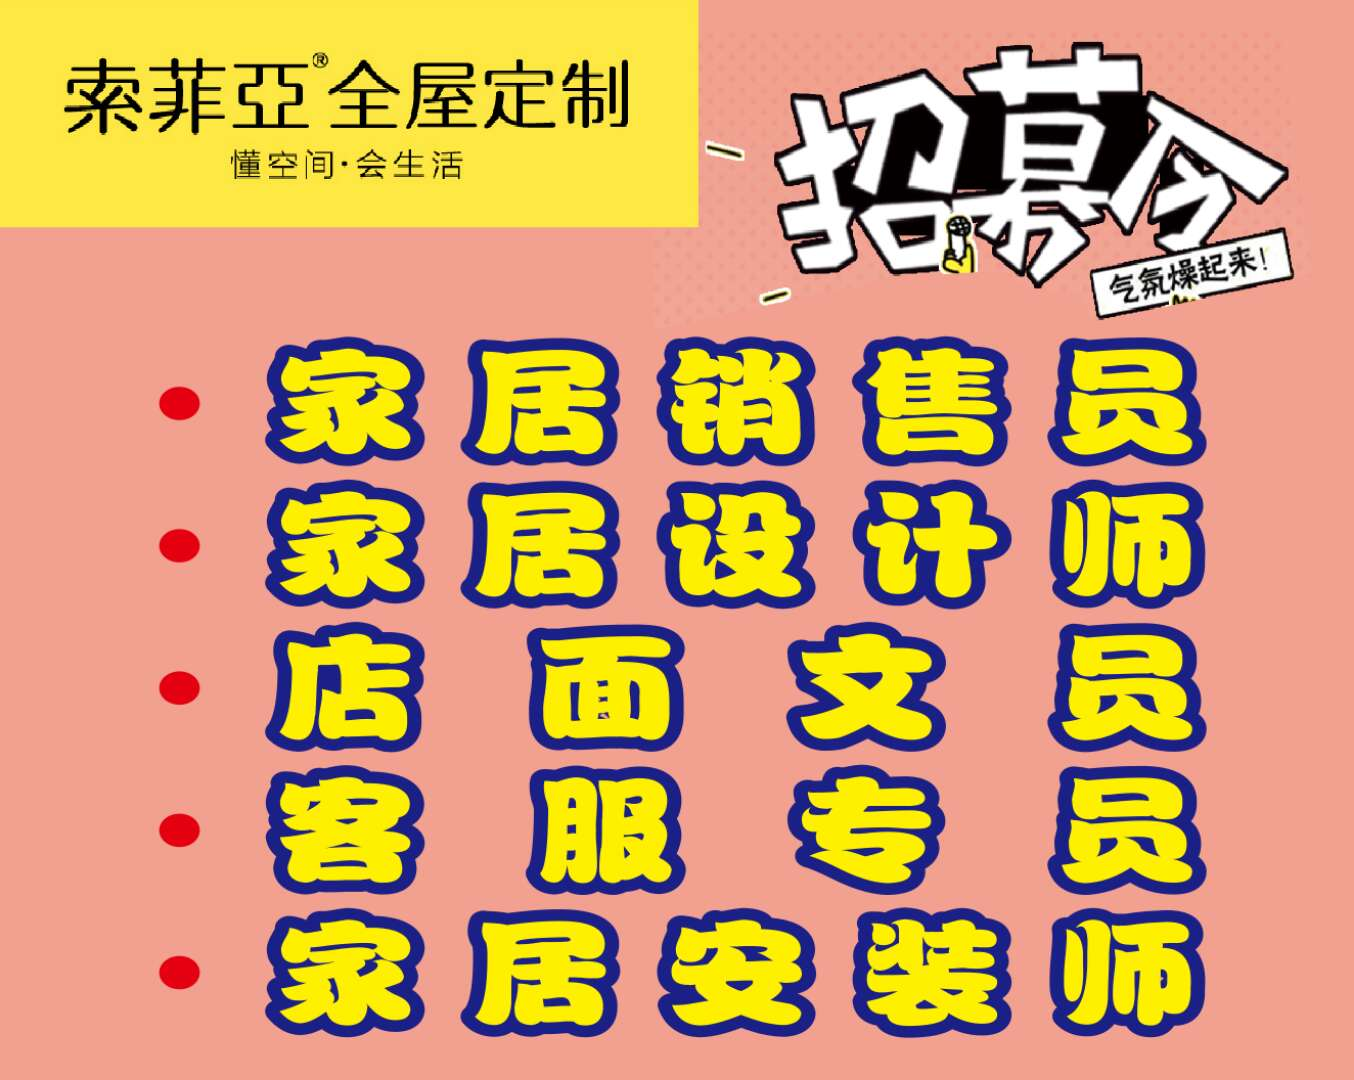 重庆久润汇建材有限公司